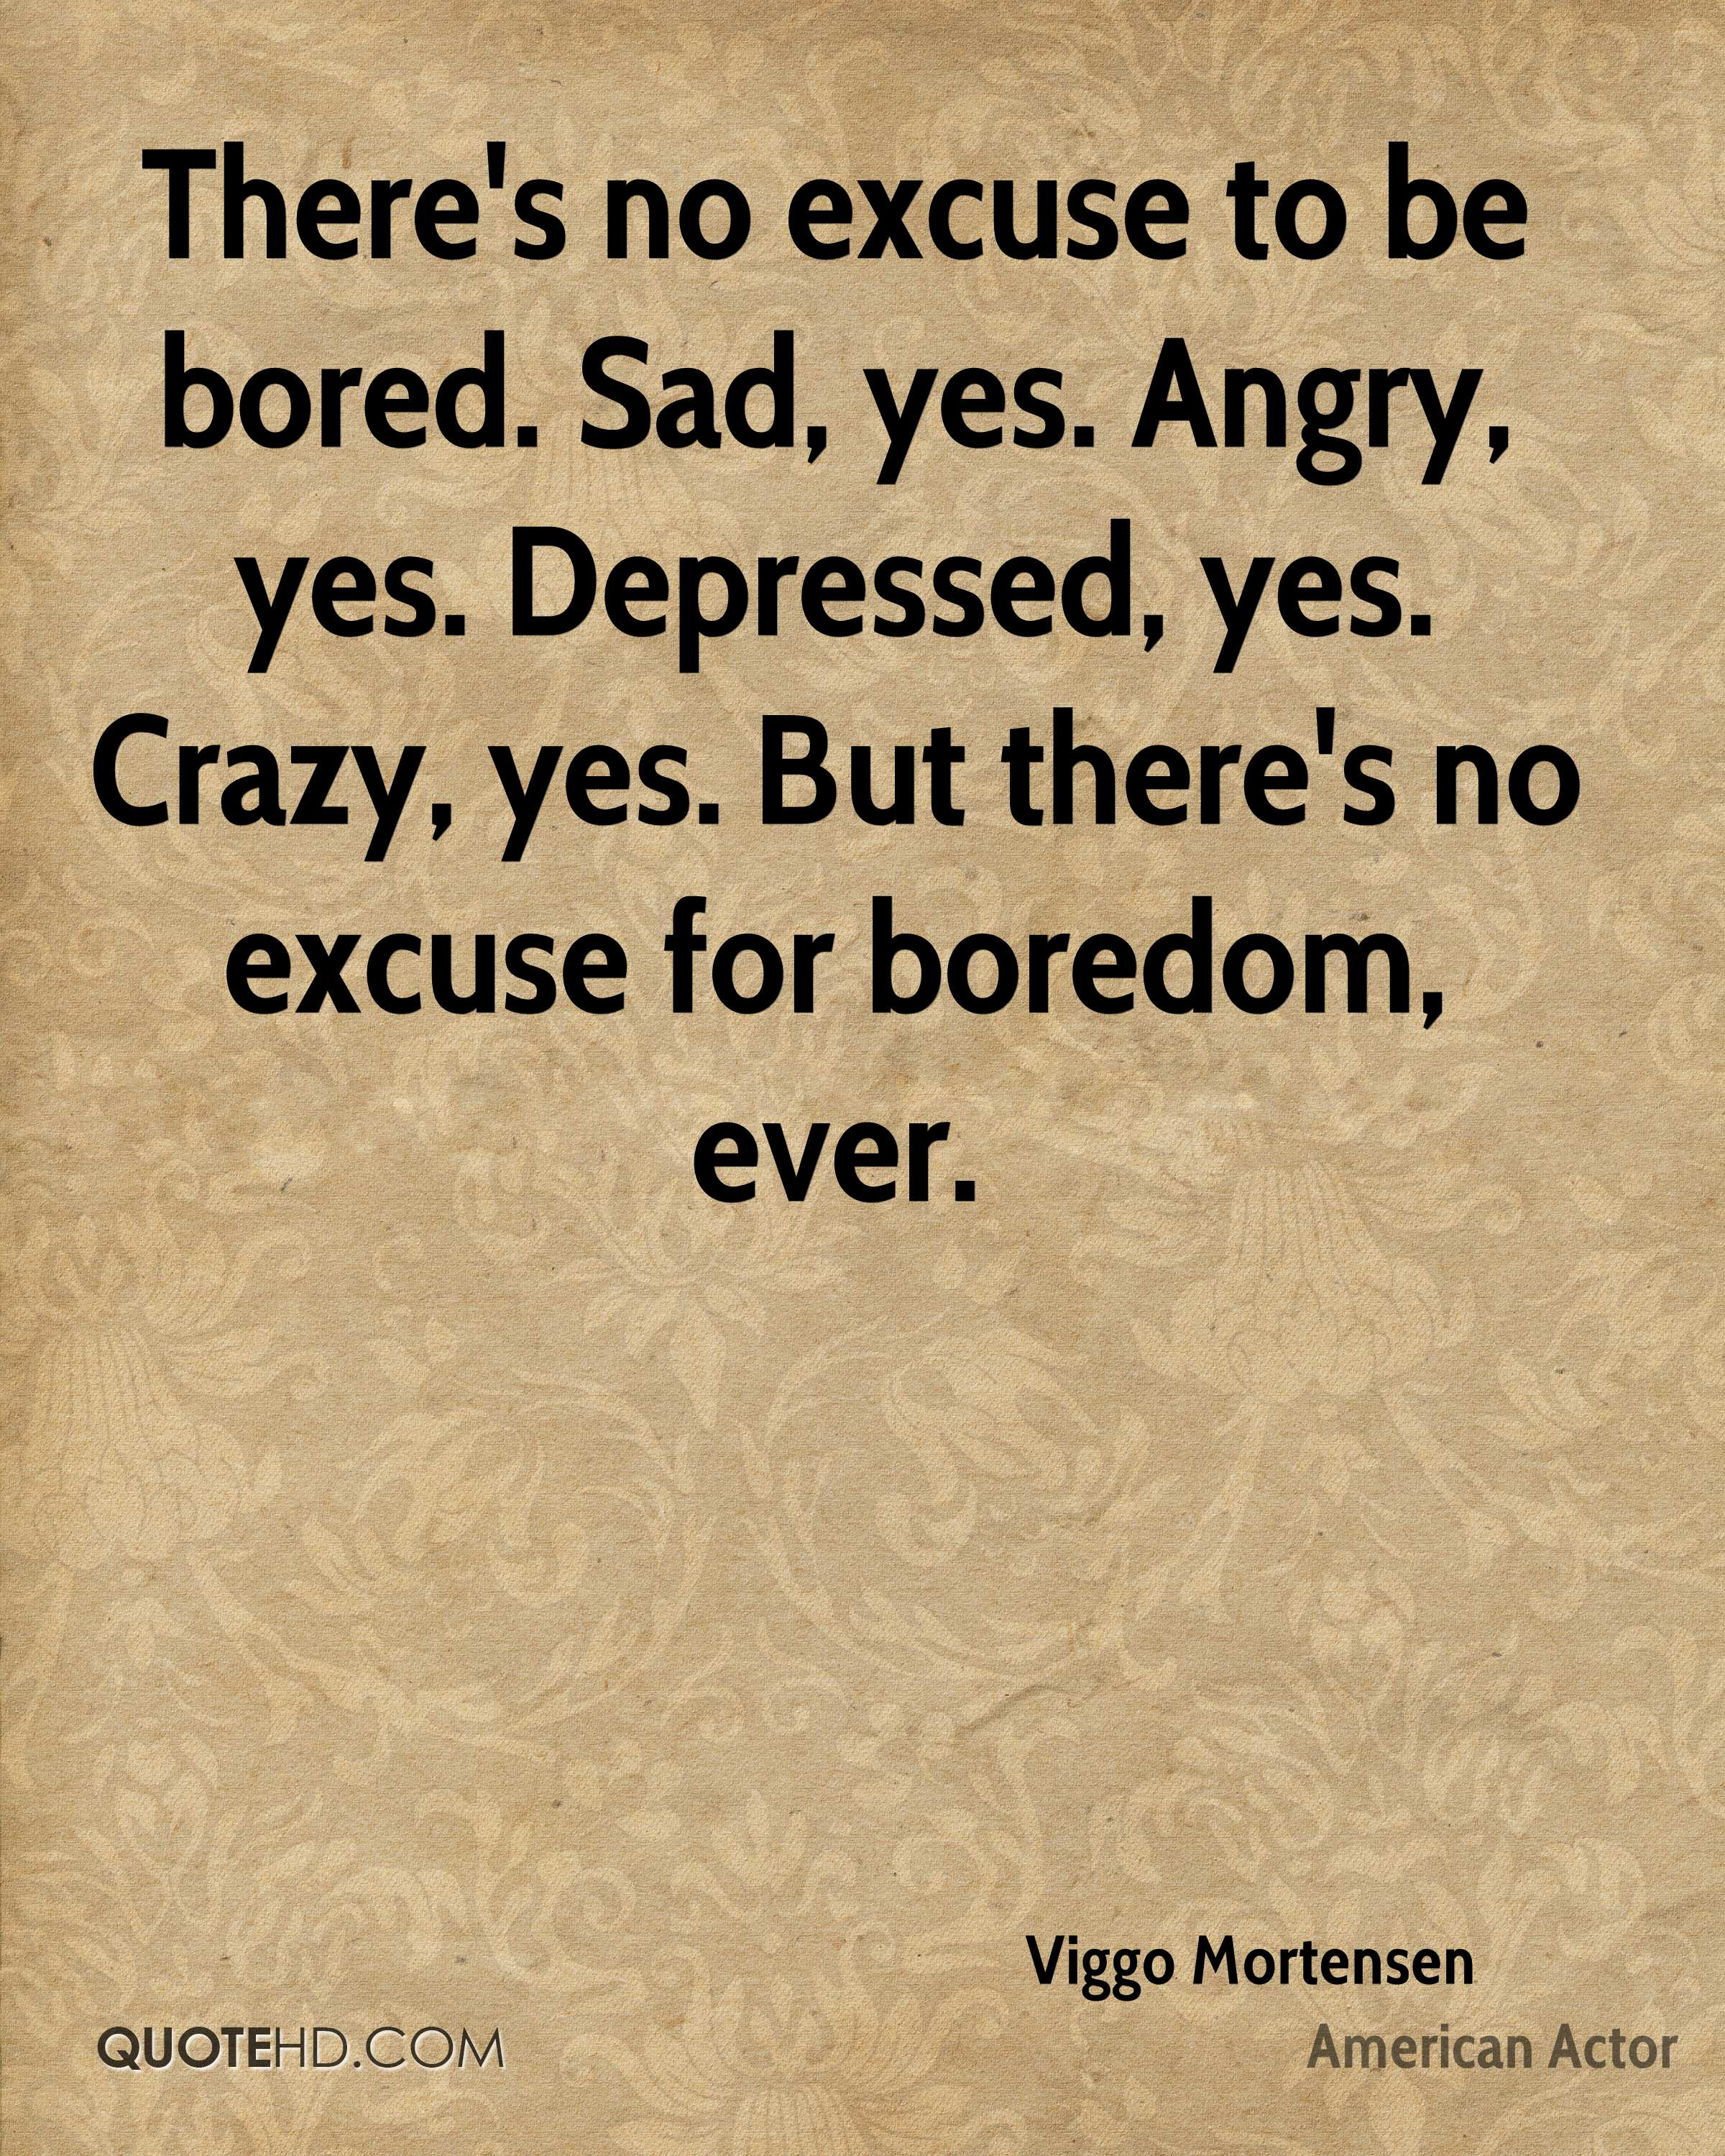 There's no excuse to be bored. Sad, yes. Angry, yes. Depressed, yes. Crazy, yes. But there's no excuse for boredom, ever.